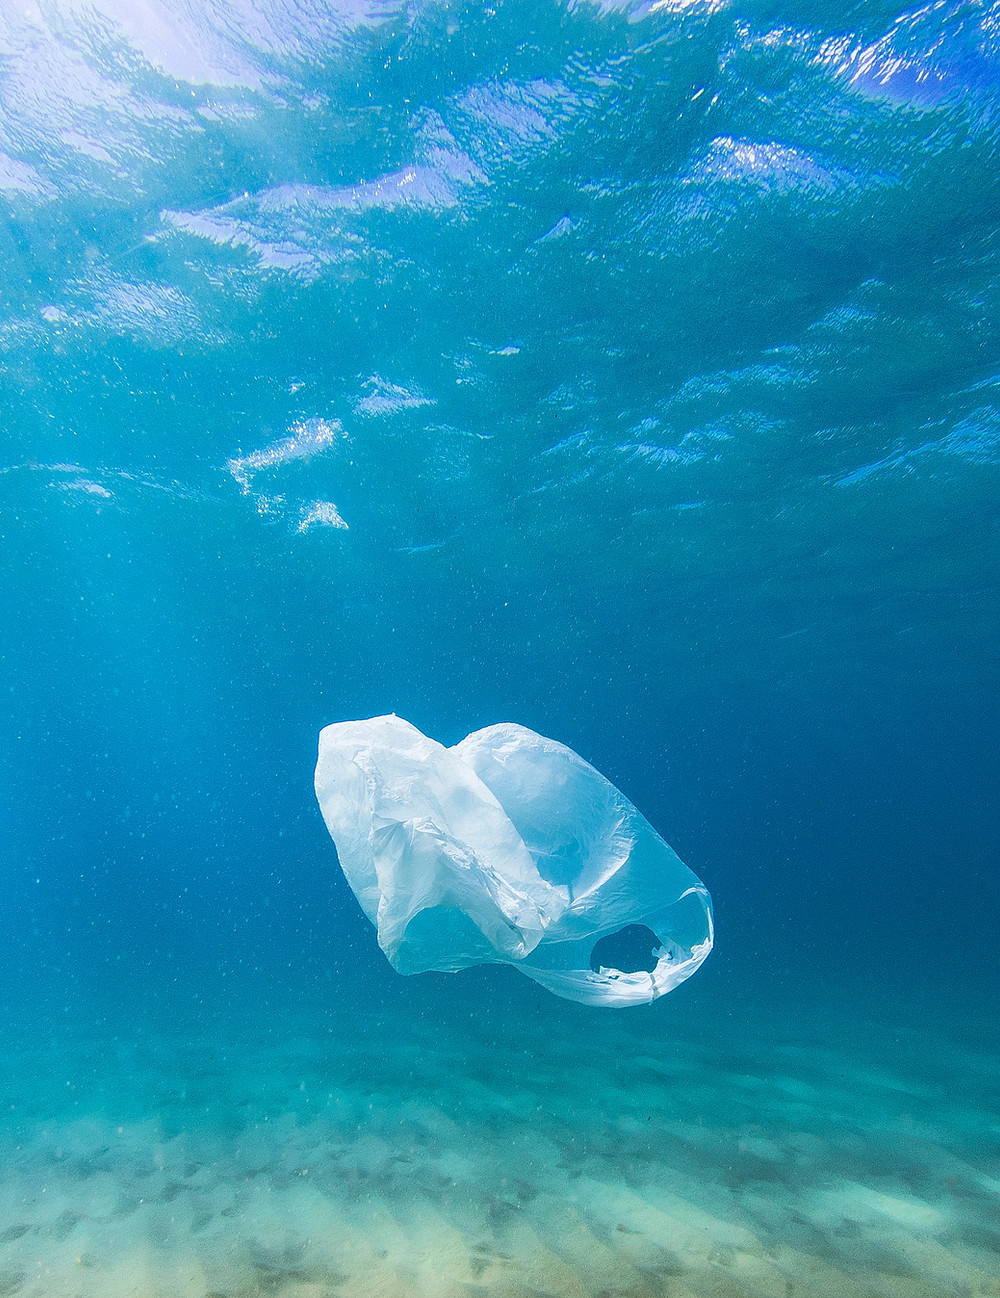 A littered plastic bag in the ocean